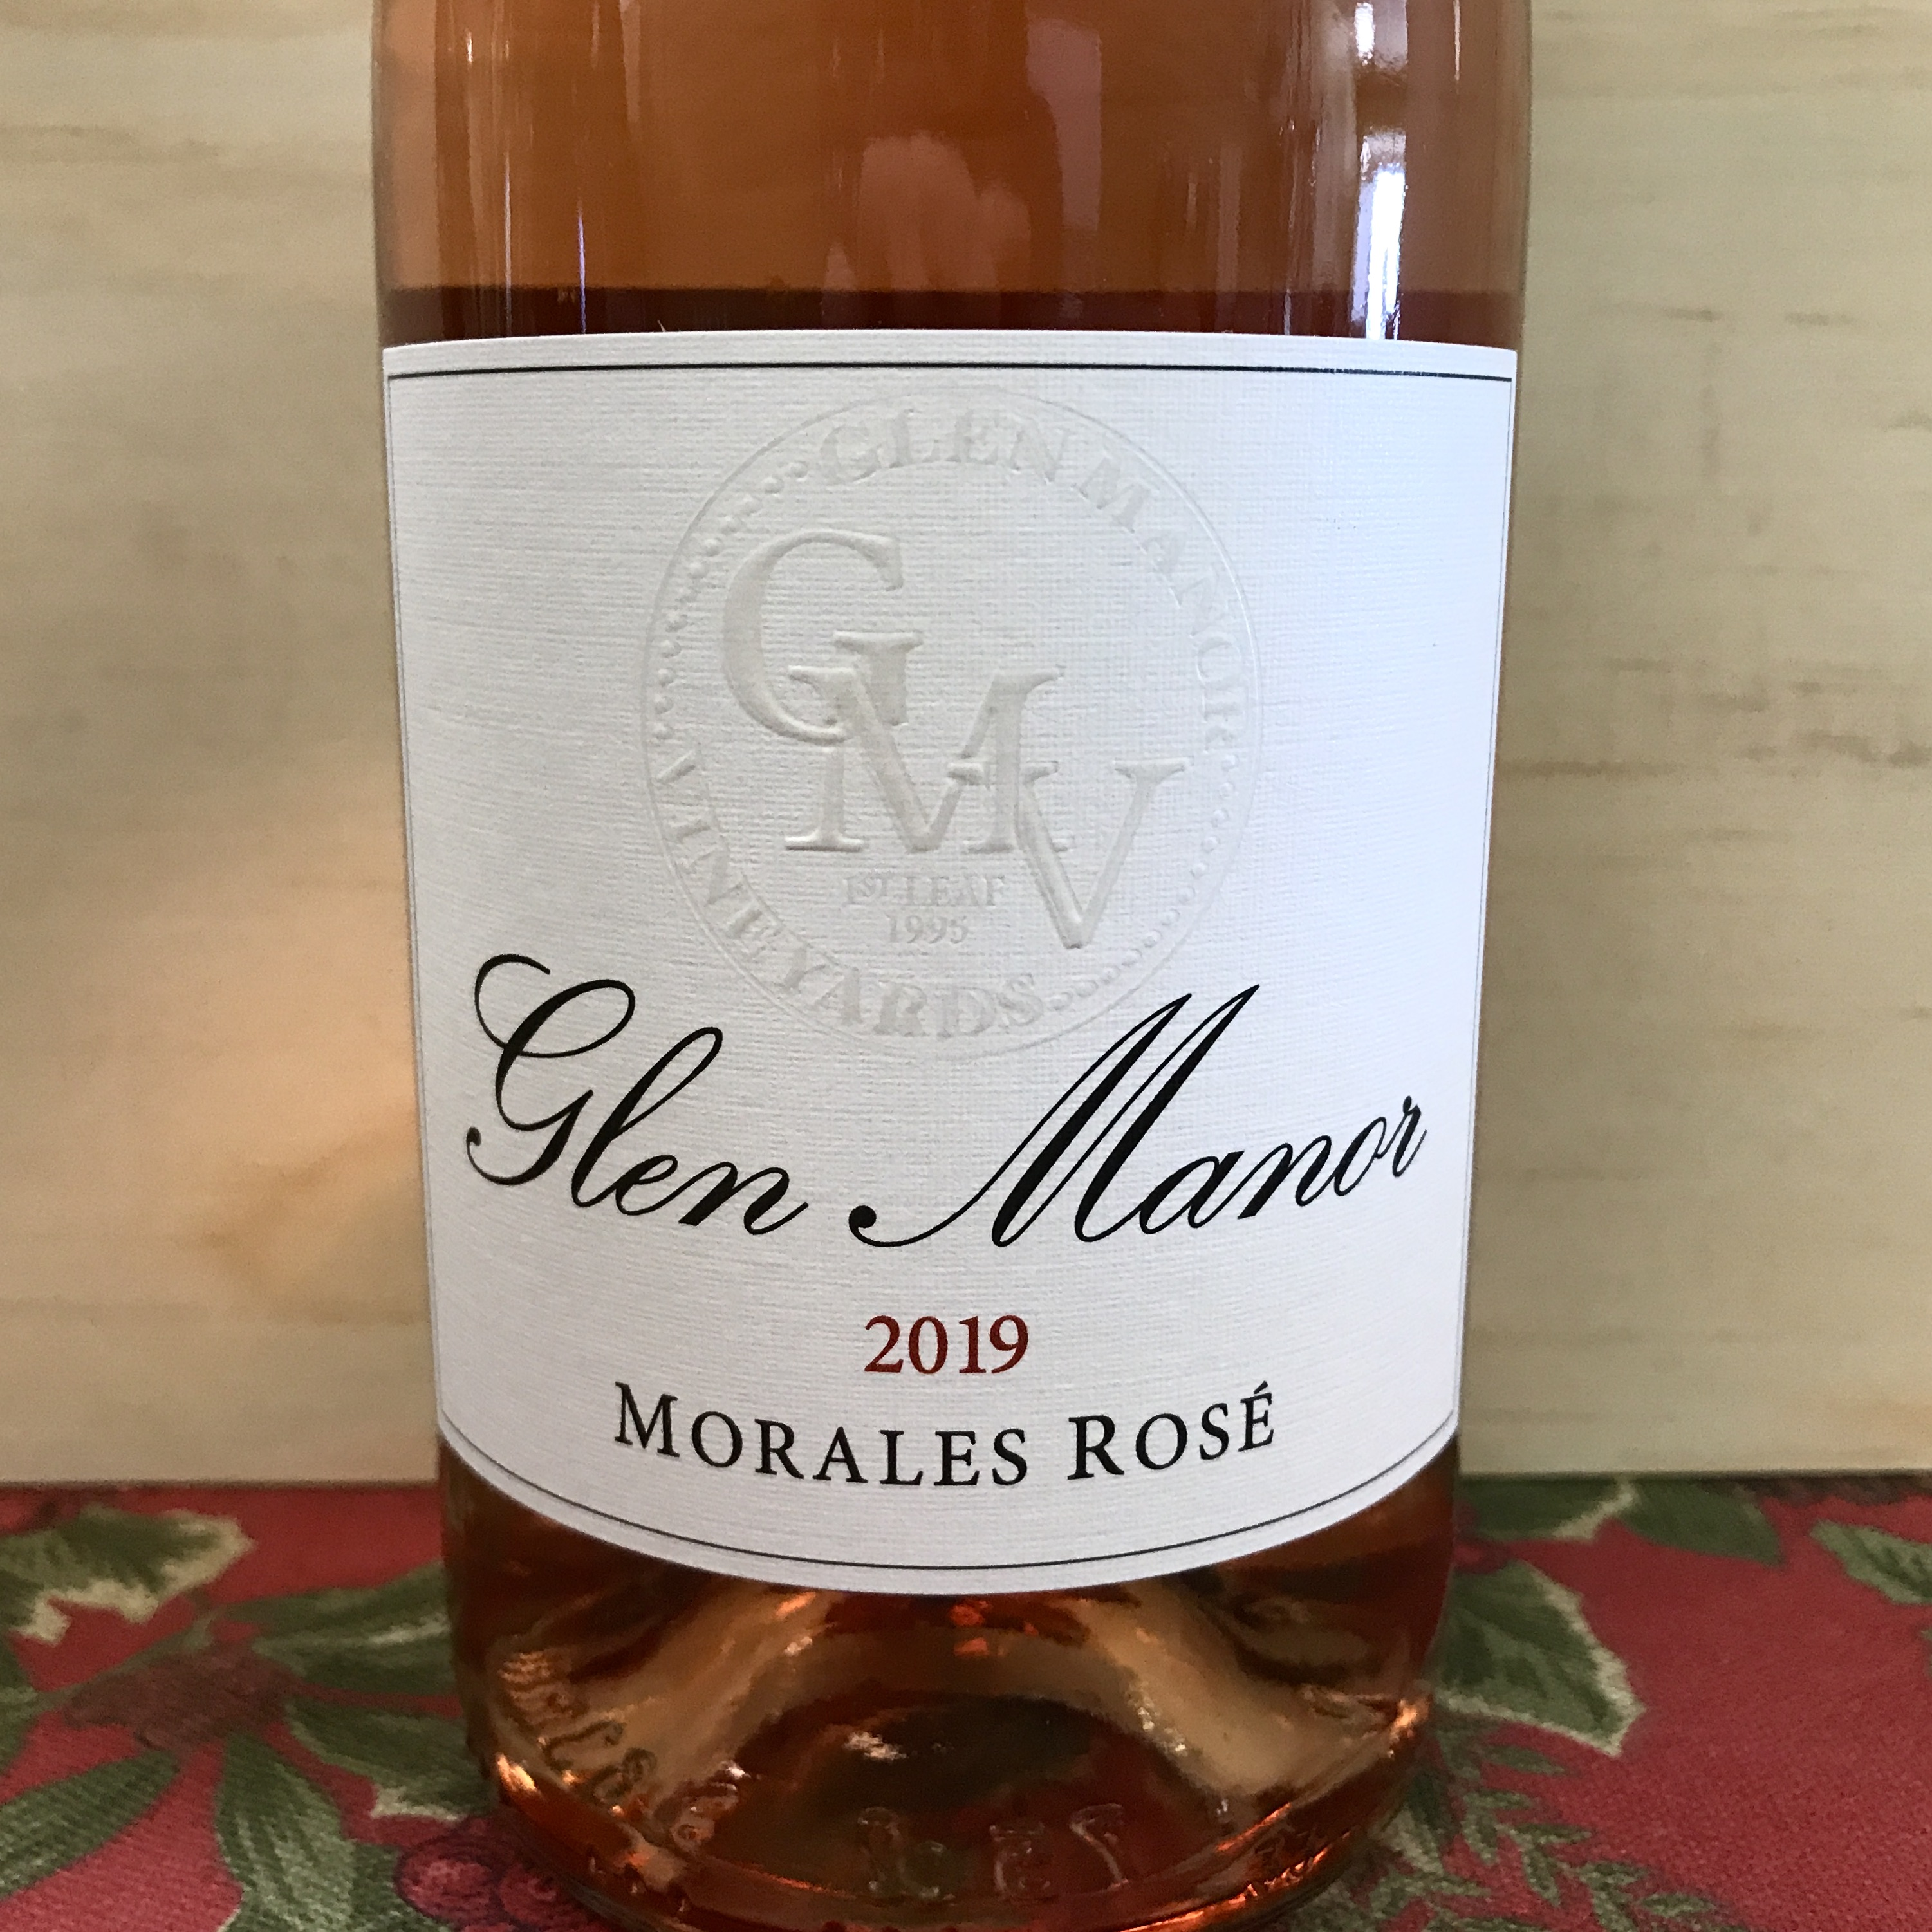 Glen Manor Morales Rosé 2019